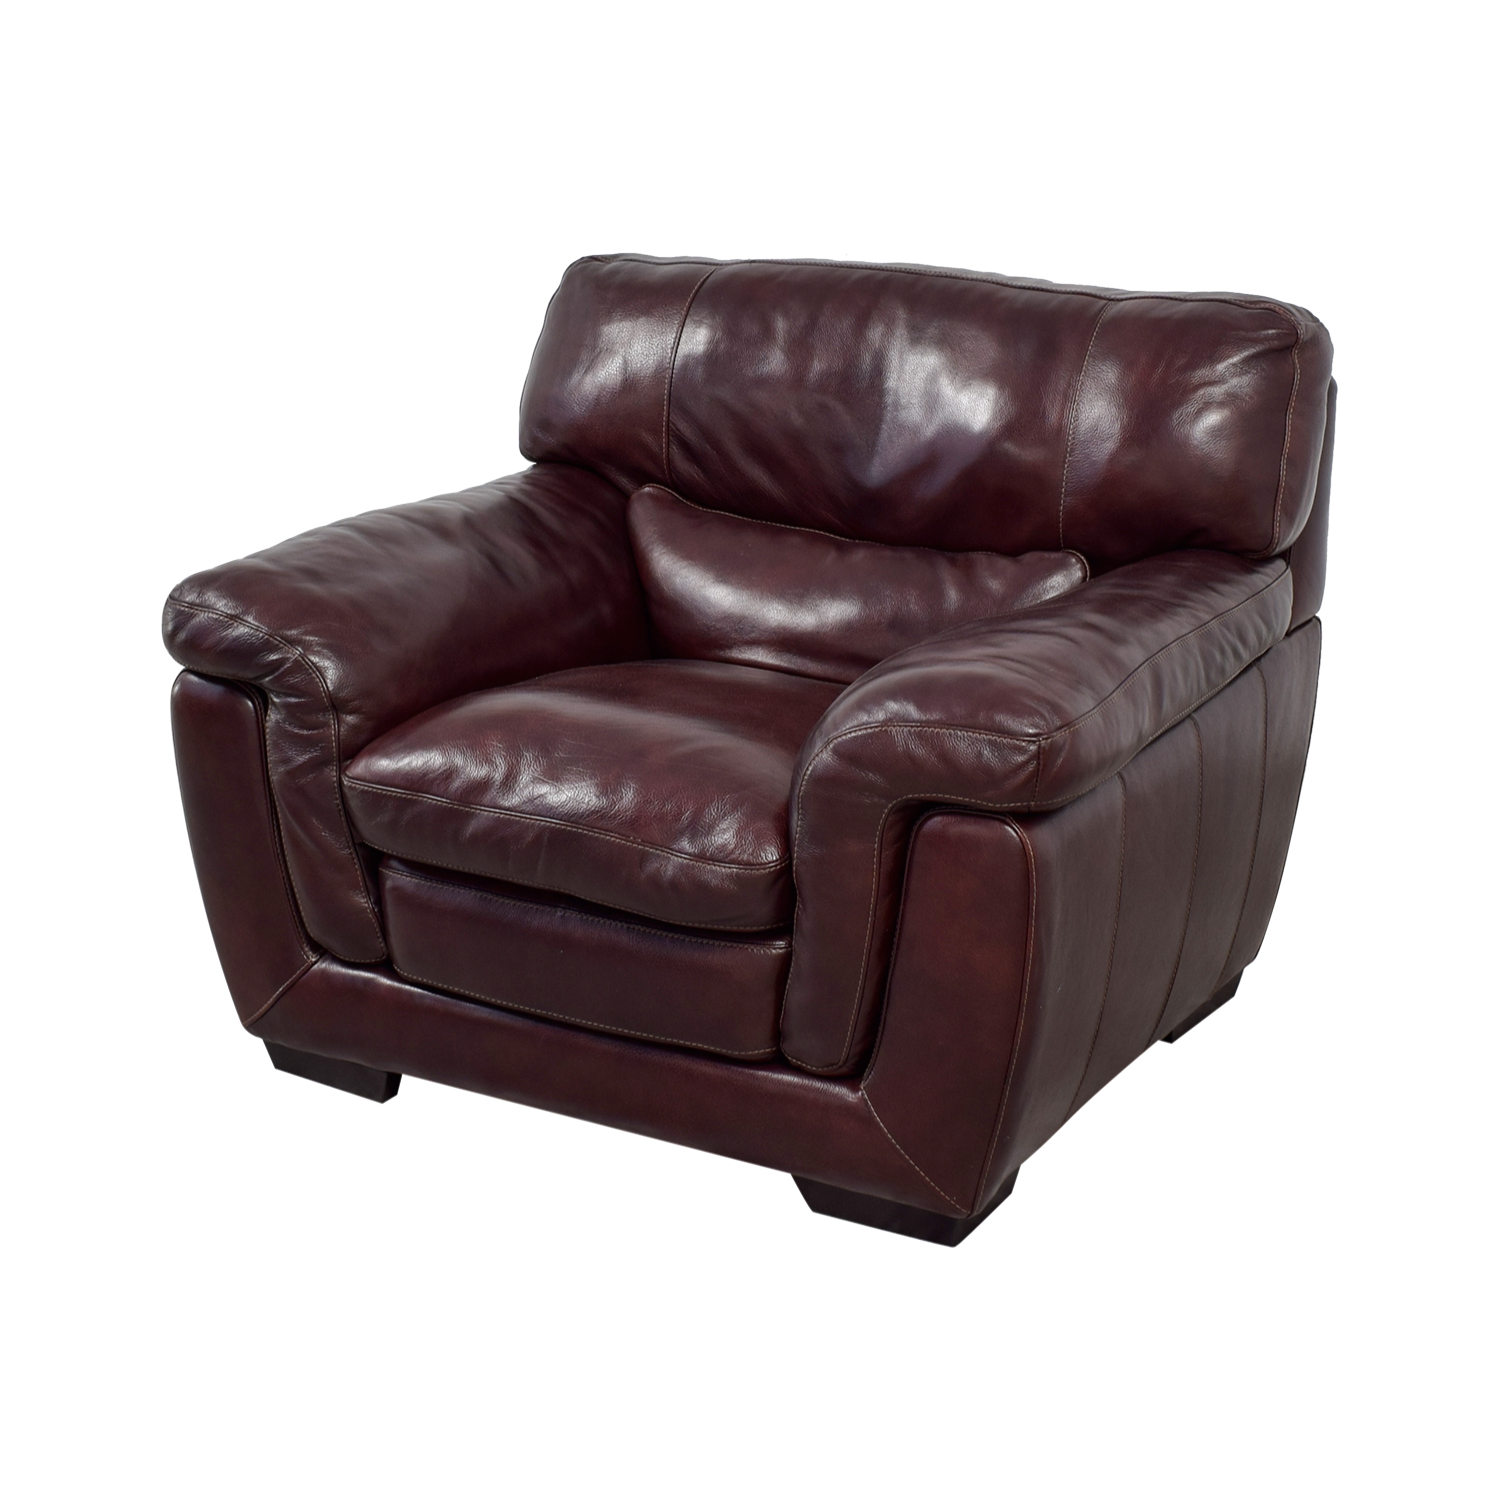 ideas style leather brown living accent shaggy styled with build splash room comfortable formal chairs rug of for chair